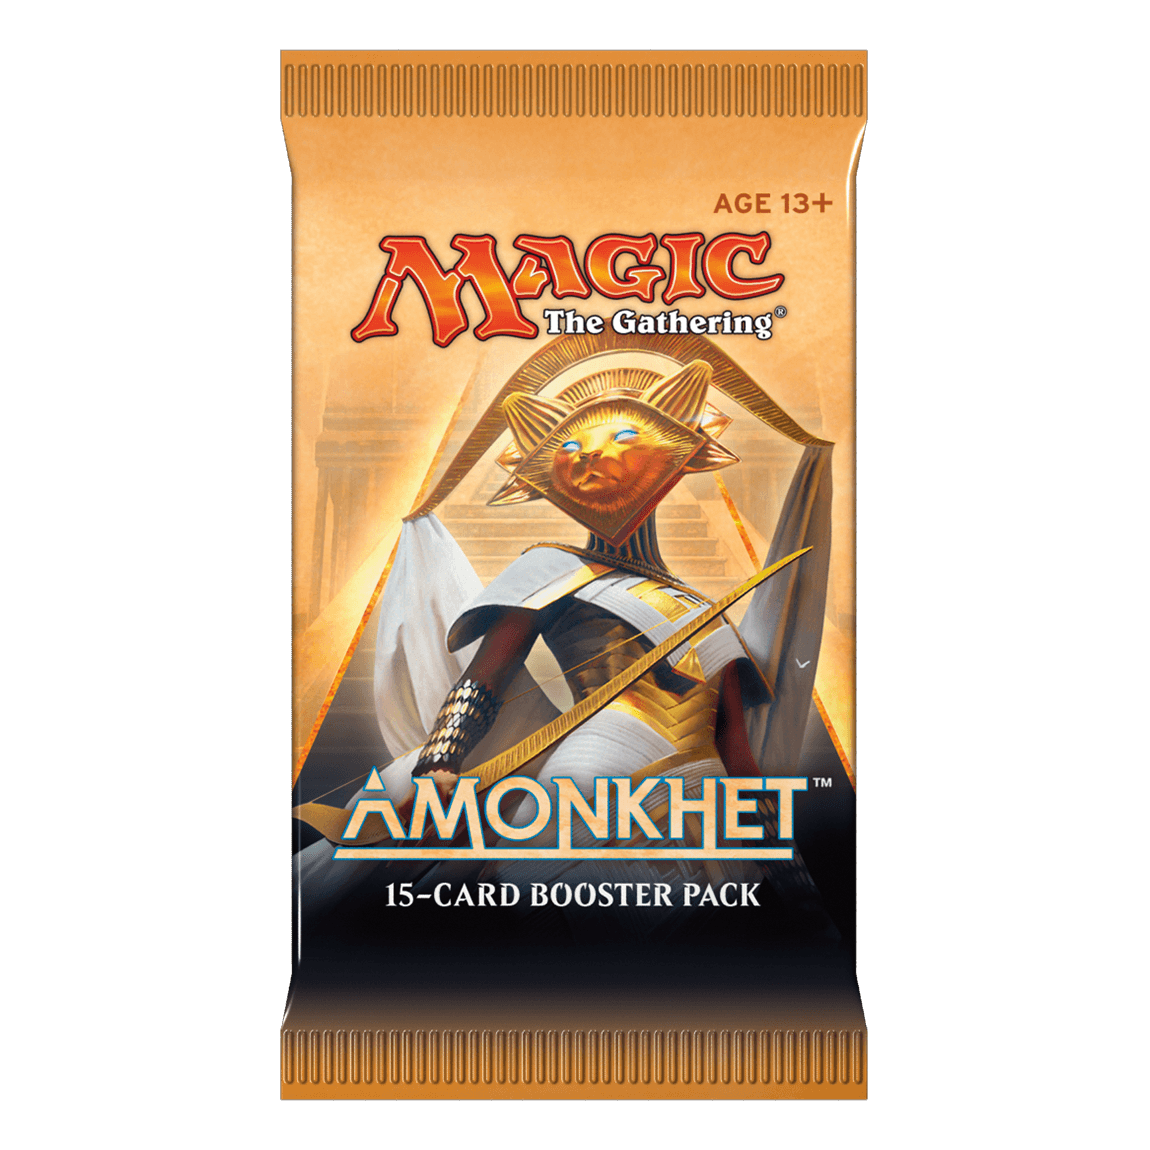 Amonkhet - MTG-Magic The Gathering-Multizone: Comics And Games | Multizone: Comics And Games